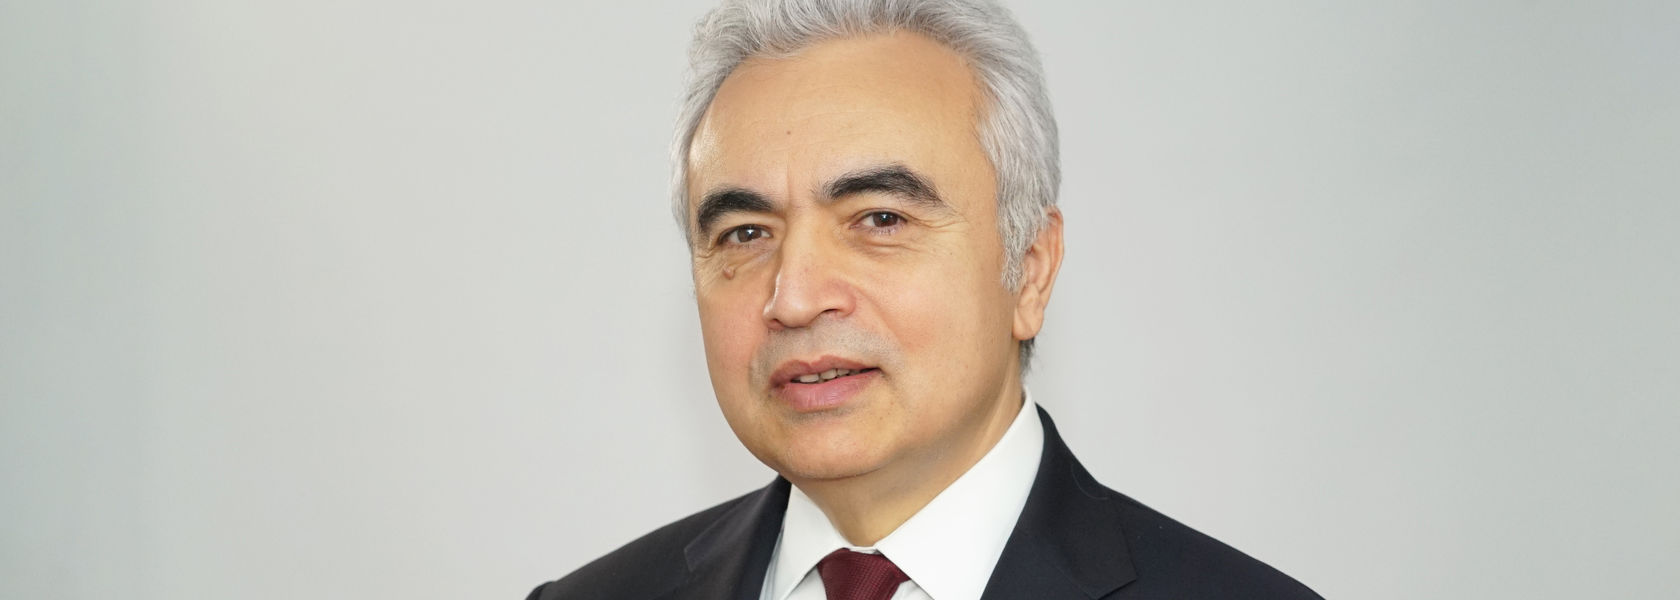 CCS central to longer term decarbonisation: IEA